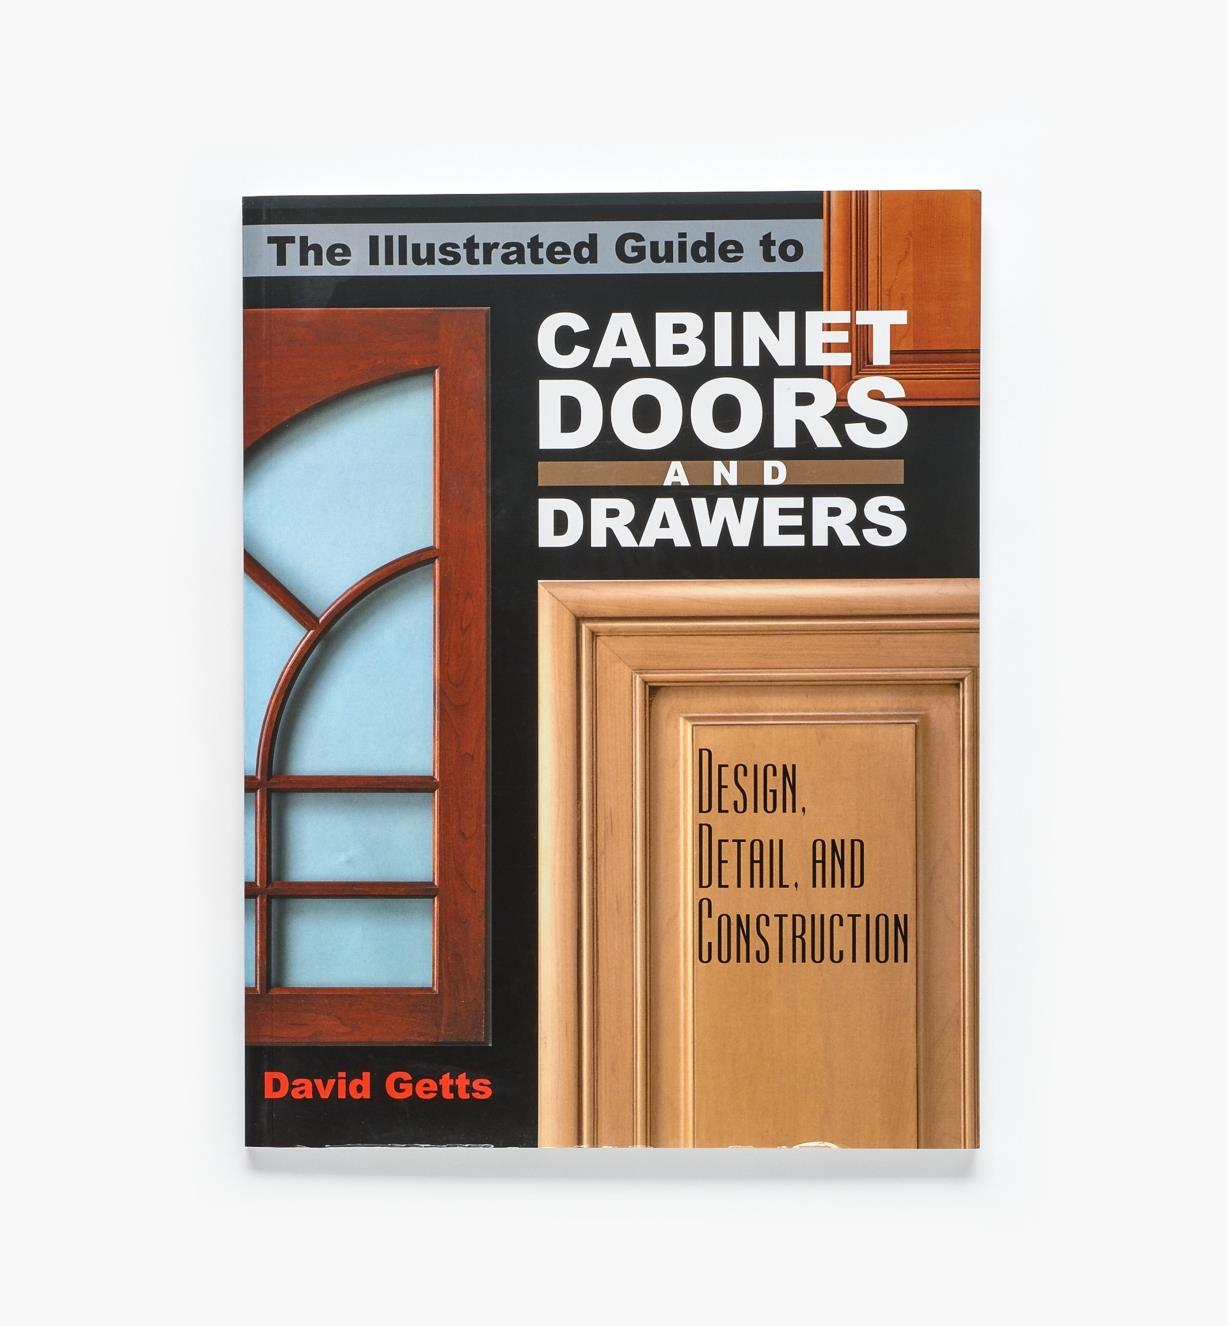 49L2723 - The Illustrated Guide to Cabinet Doors and Drawers